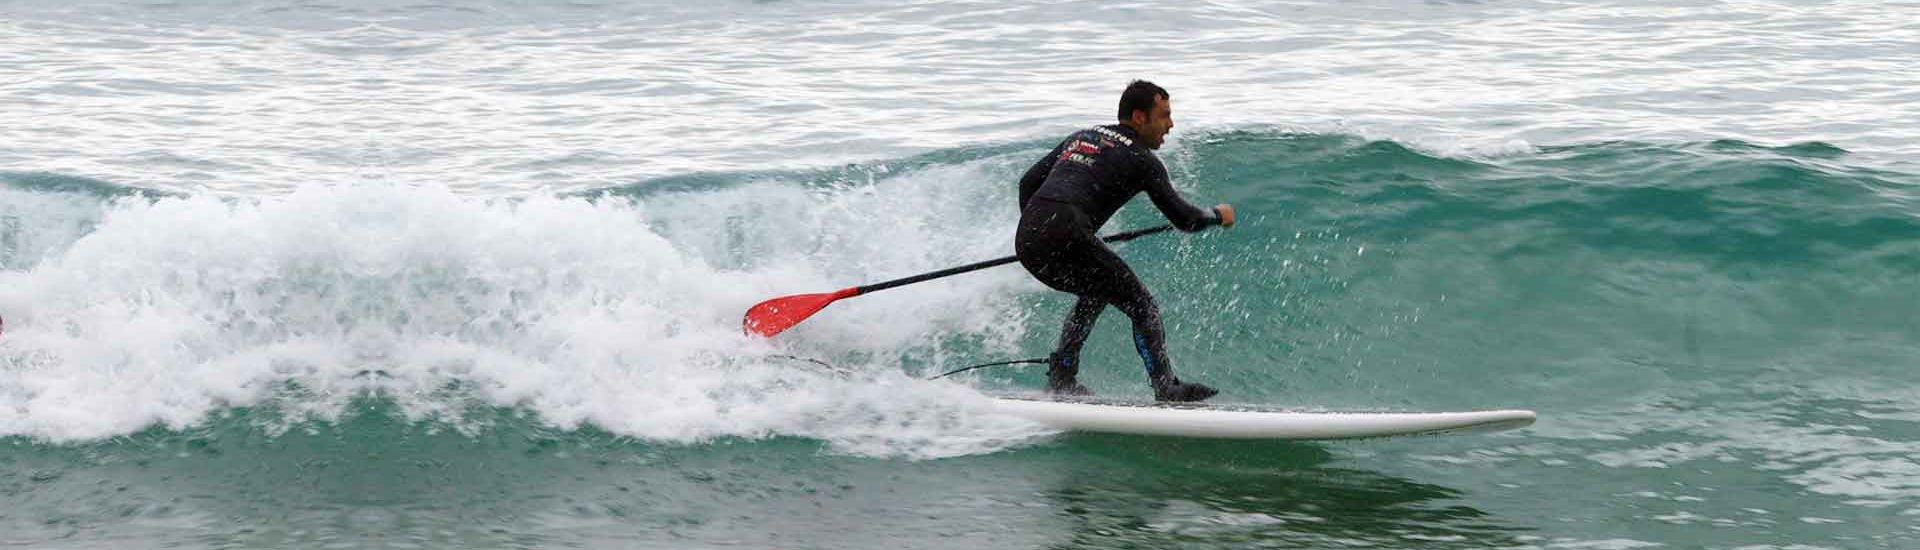 Stand Up Paddle Surf amb onades